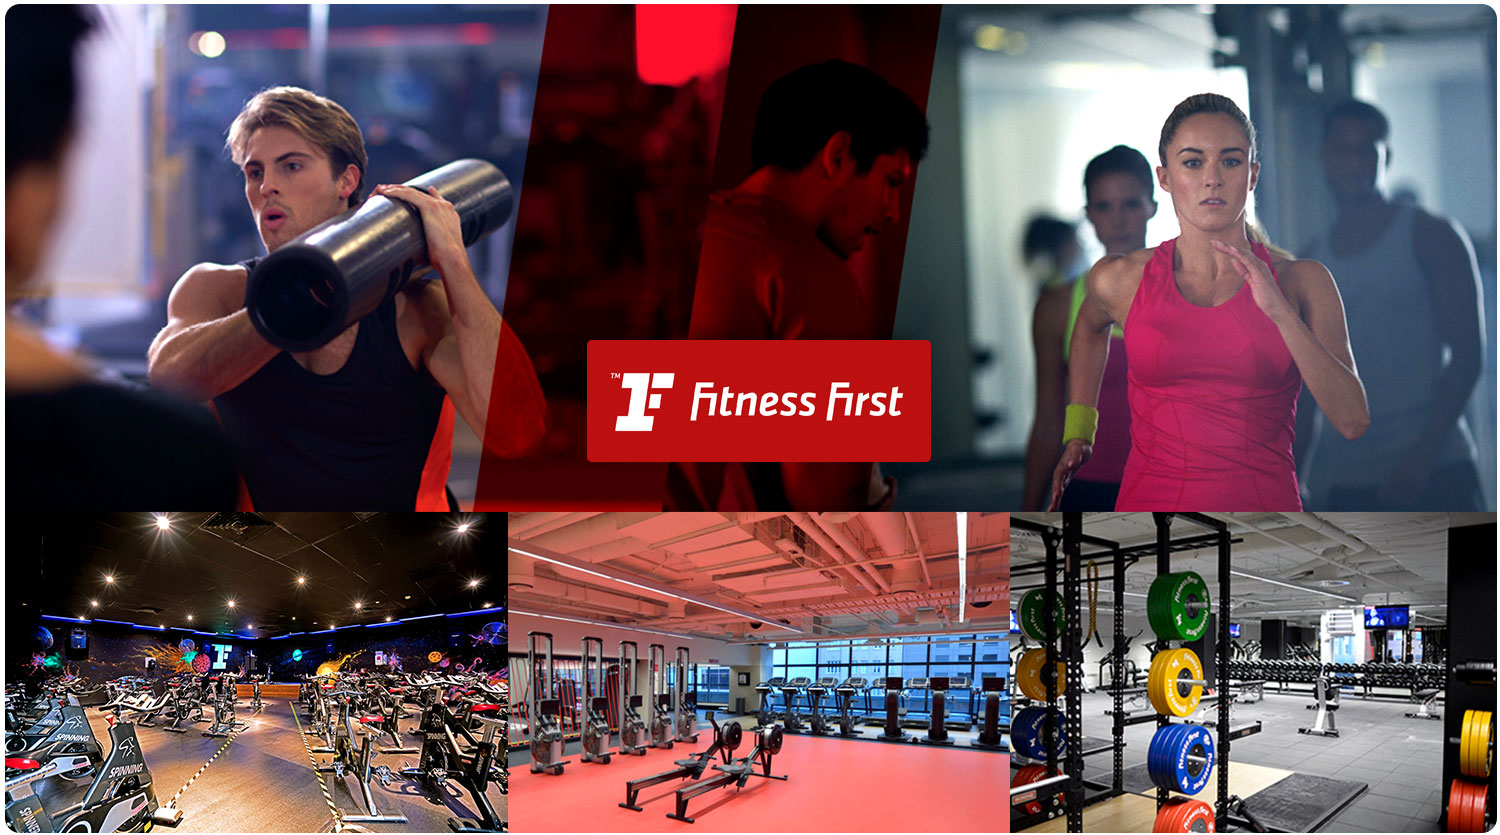 Start your Fitness Journey with Fitness First with only $9.95 for 1 week at Fitness First Wynnum. Experience our first class gym and freestyle classes inc. Les Mills, Yoga, Pilates and more. Take the first step with Fitness First Wynnum.